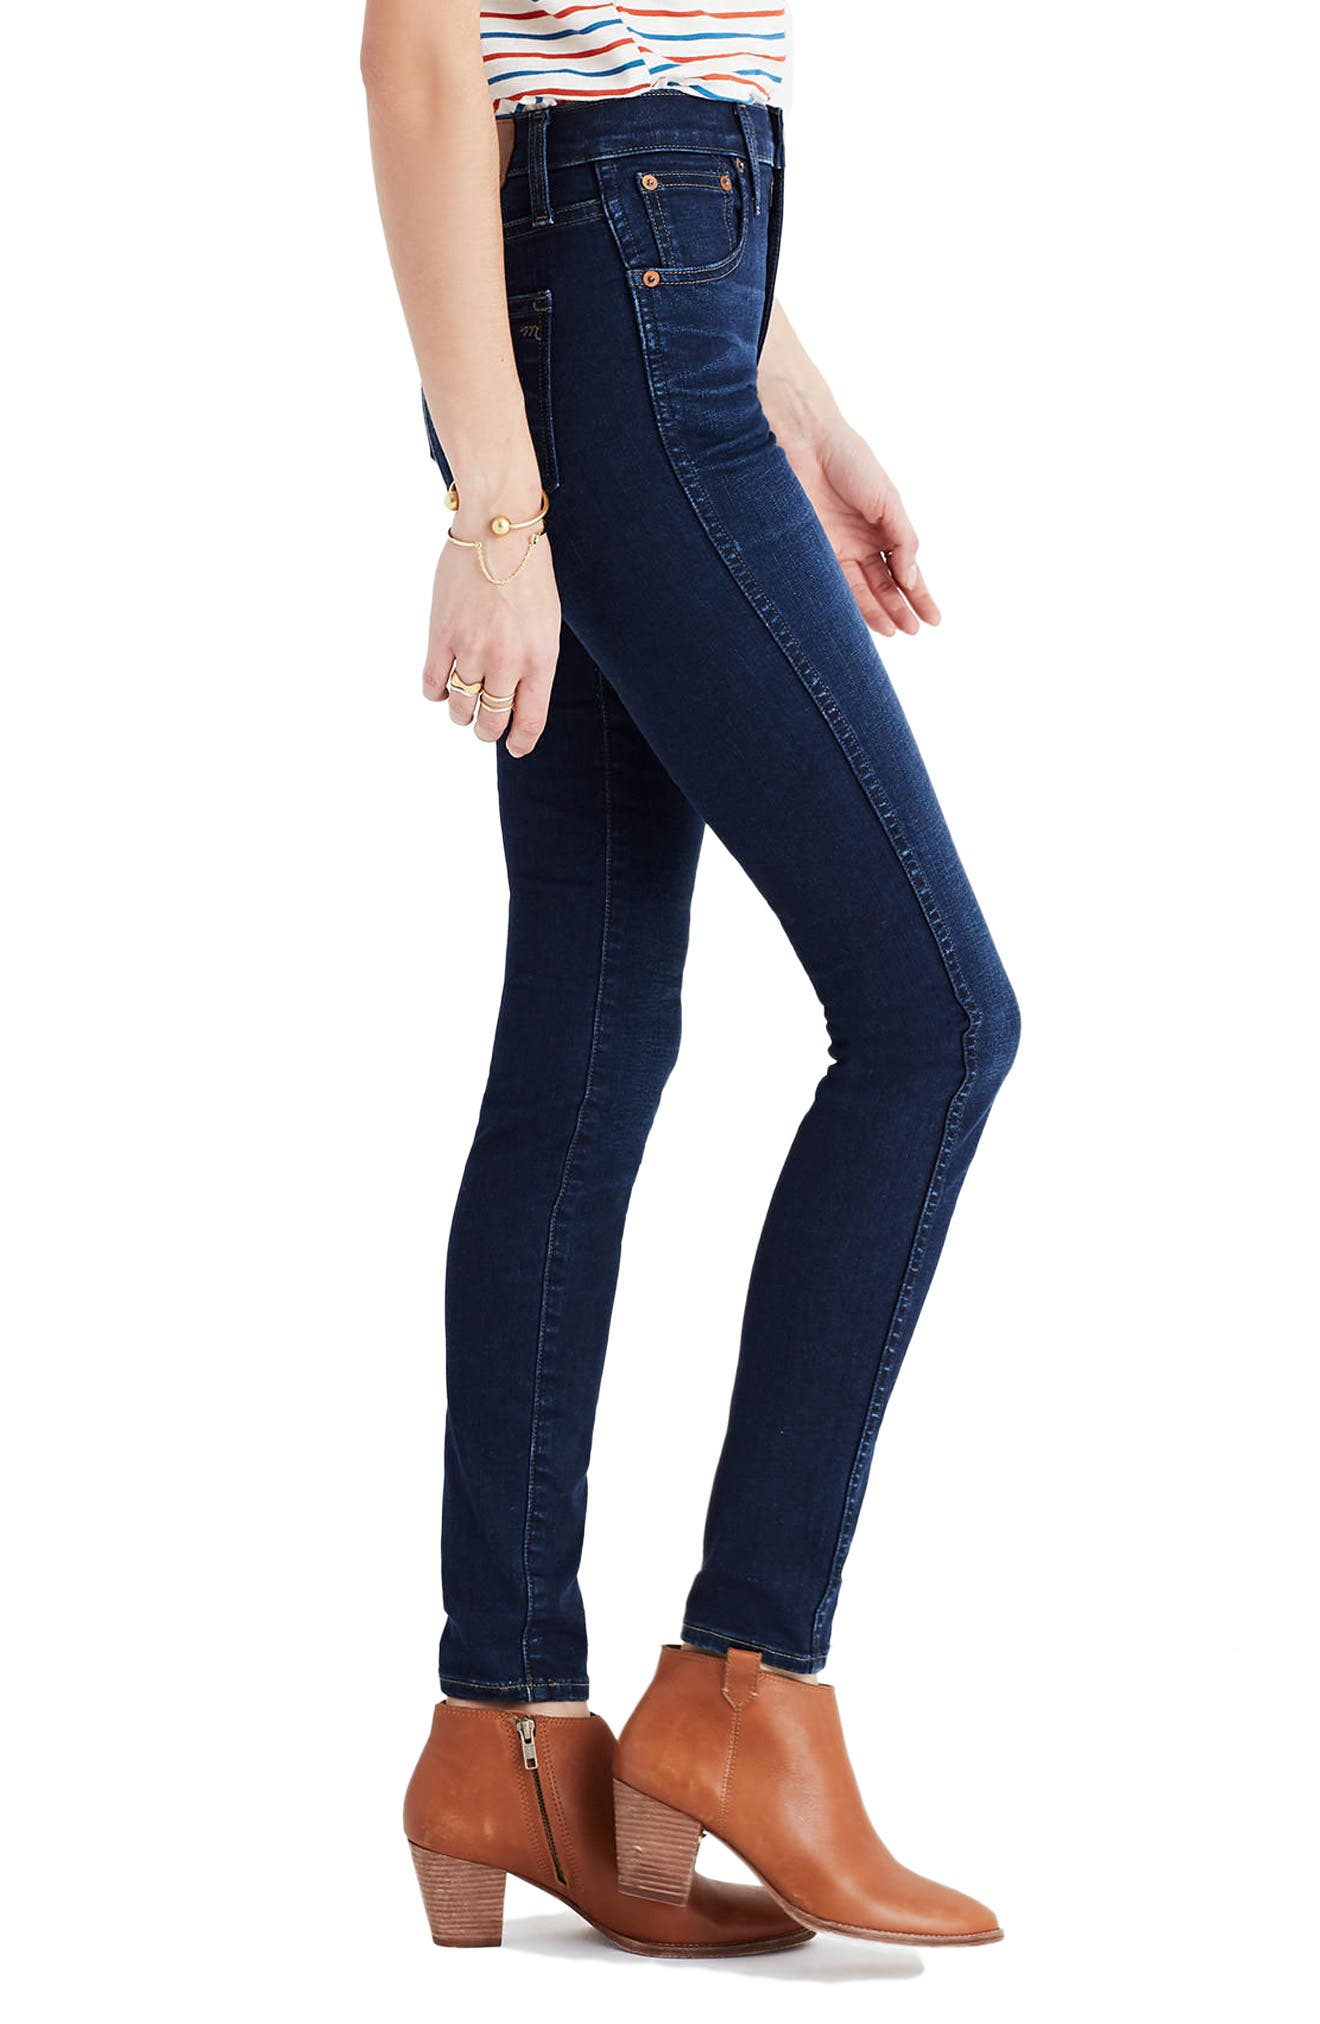 MADEWELL,                             10-Inch High Rise Skinny Jeans,                             Alternate thumbnail 5, color,                             HAYES WASH